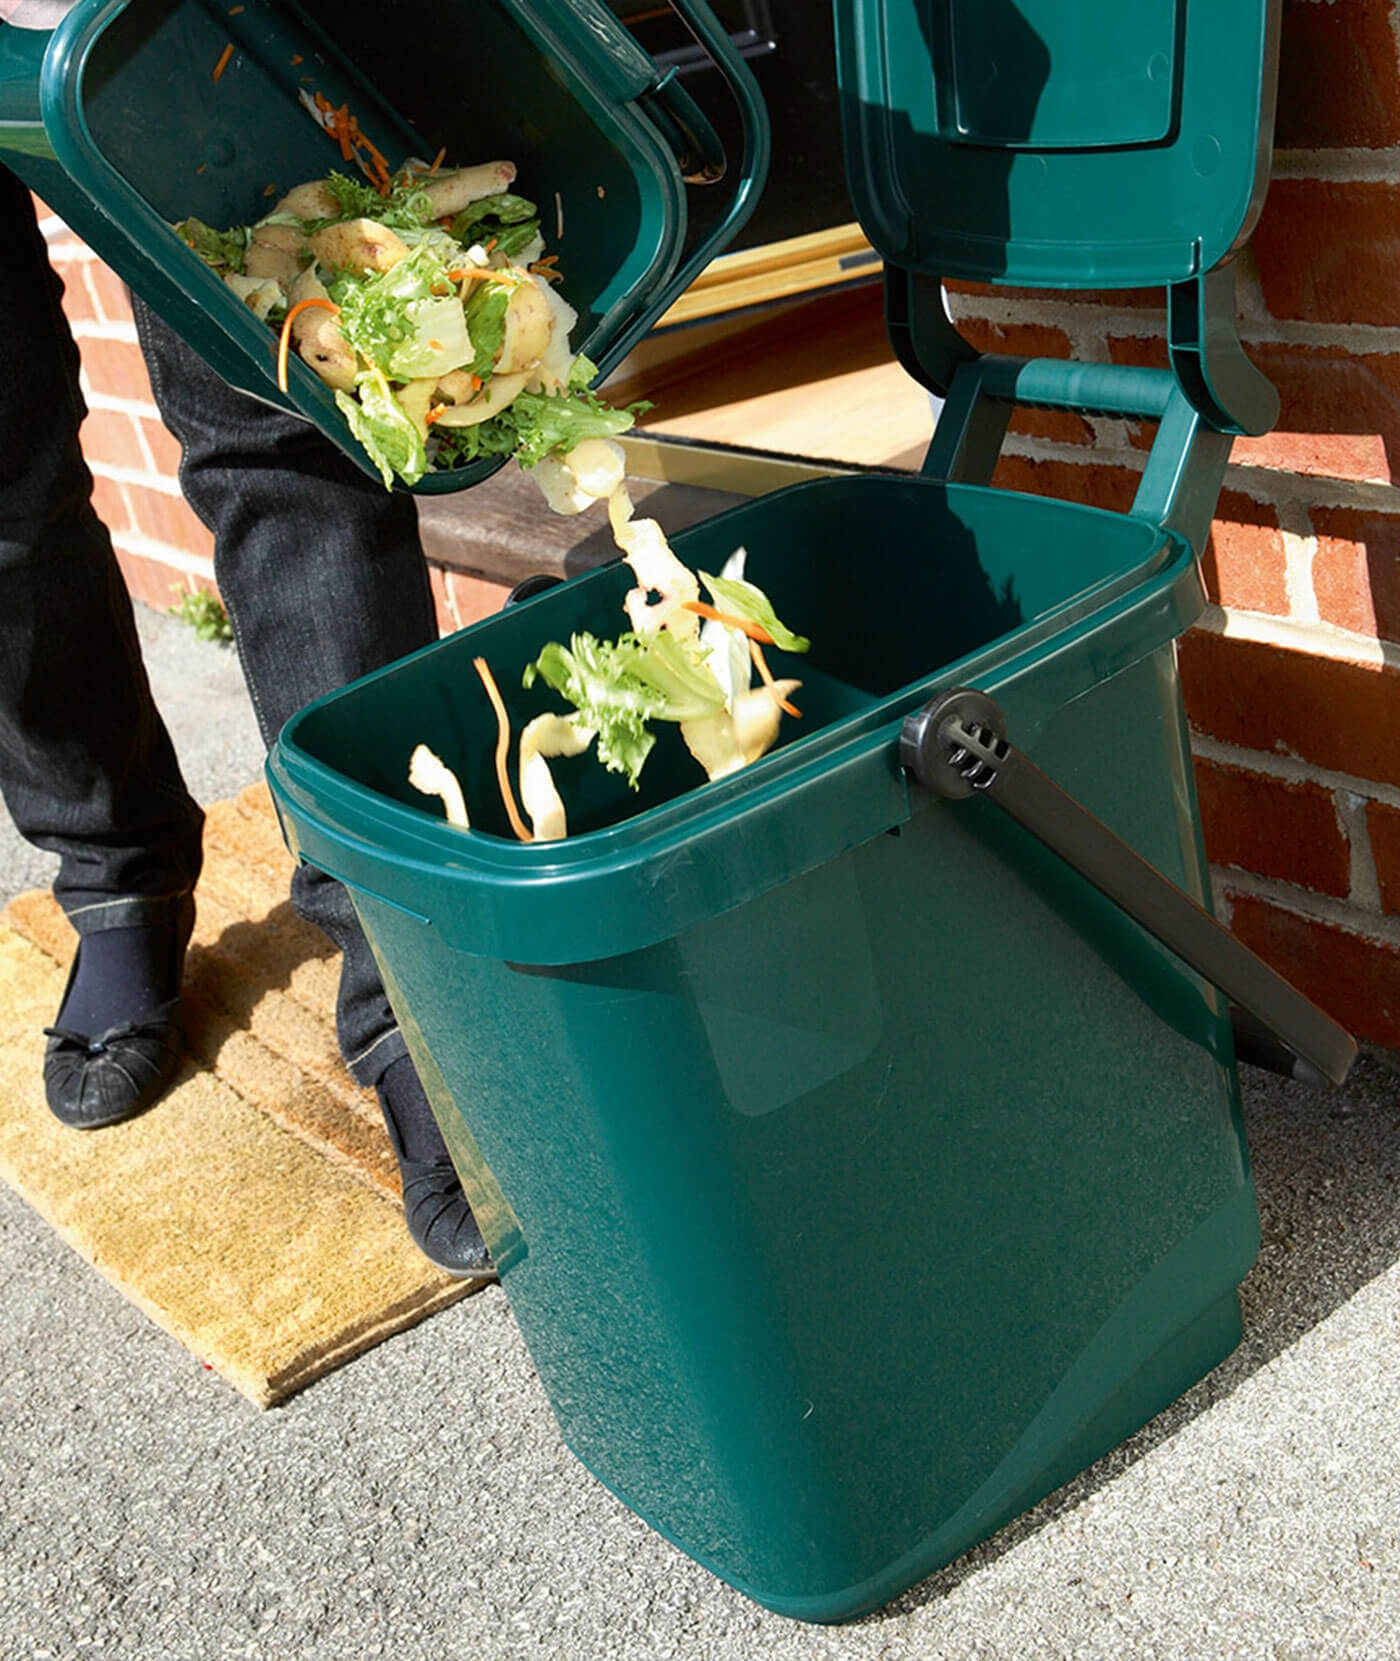 Blog - Top Tips for a Cleaner Rubbish Bin